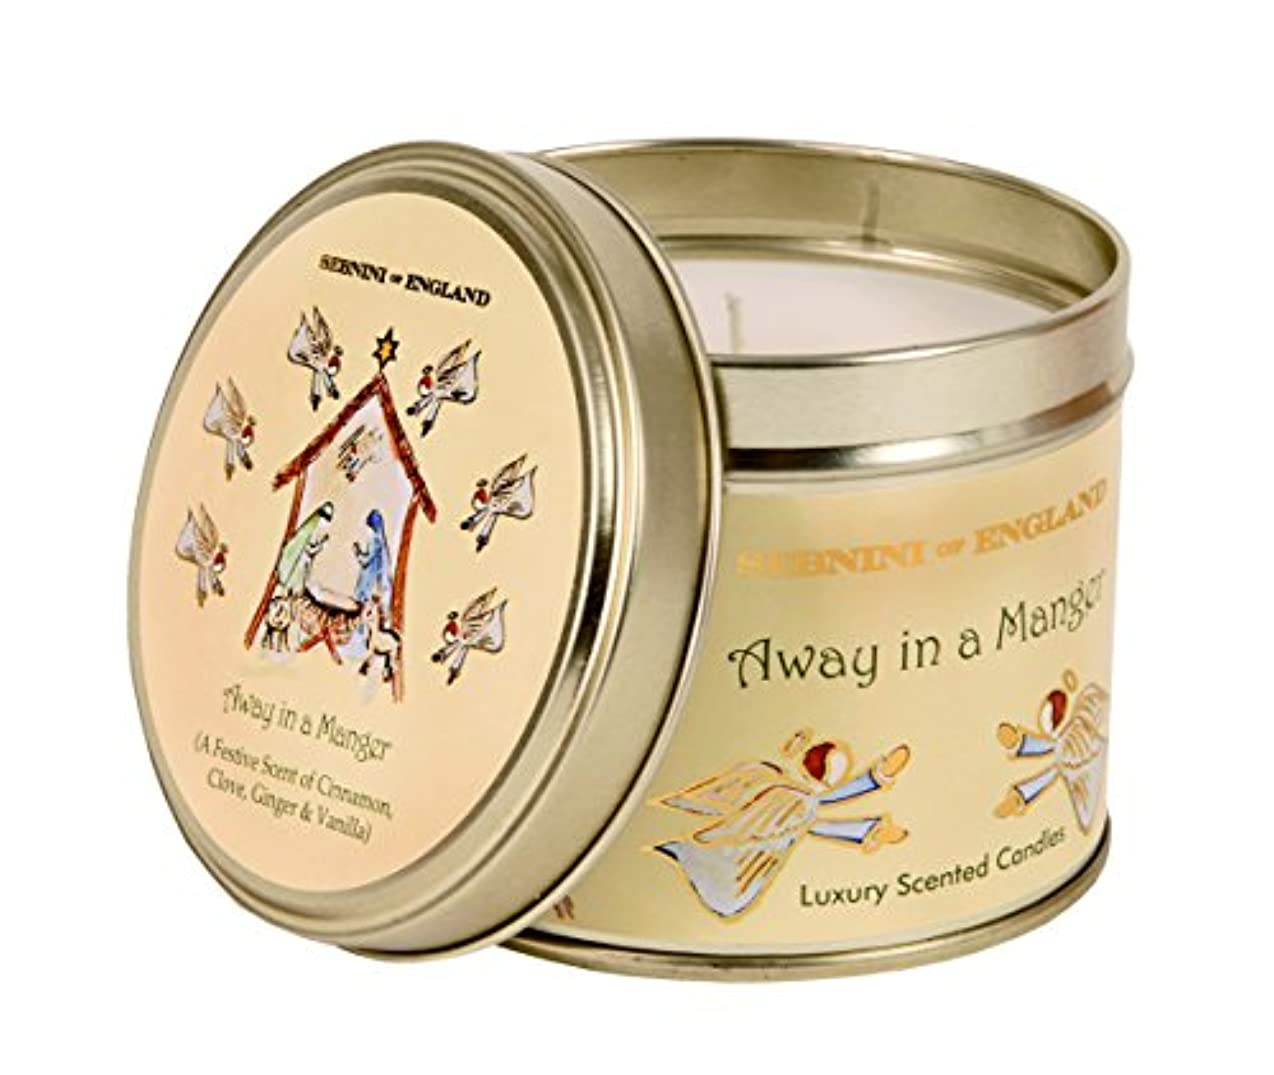 Sebnini Of England AWAY IN A MANGER Large Scented Candle Tin CINNAMON & VANILLA